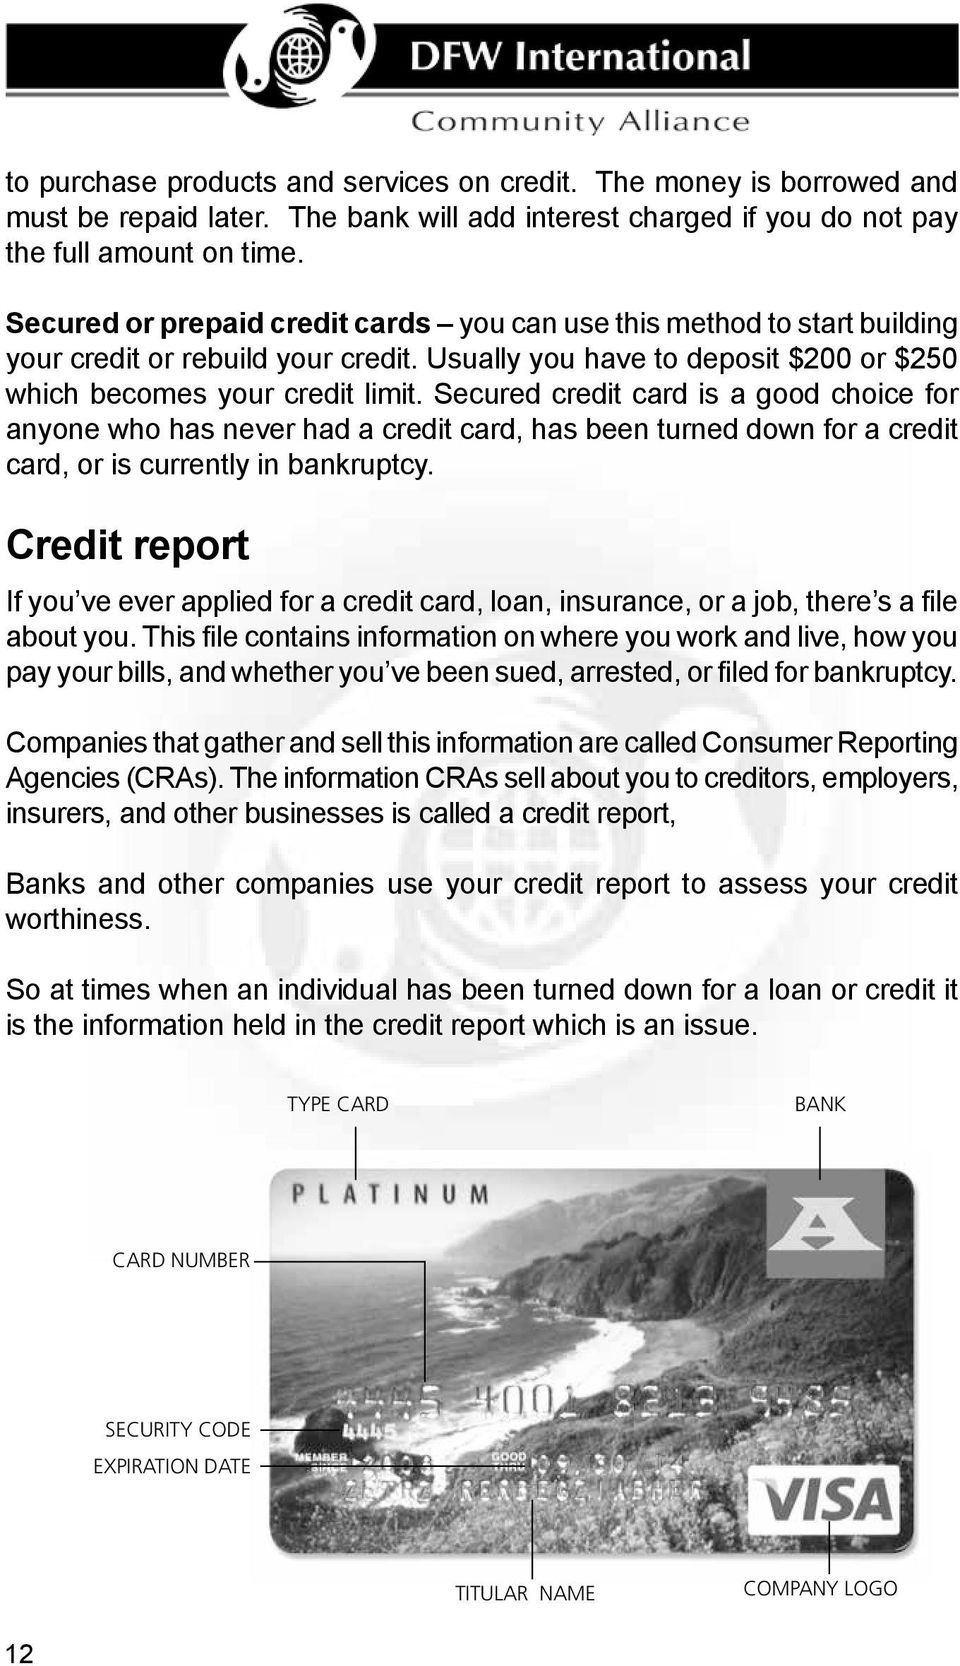 Secured credit card is a good choice for anyone who has never had a credit card, has been turned down for a credit card, or is currently in bankruptcy.